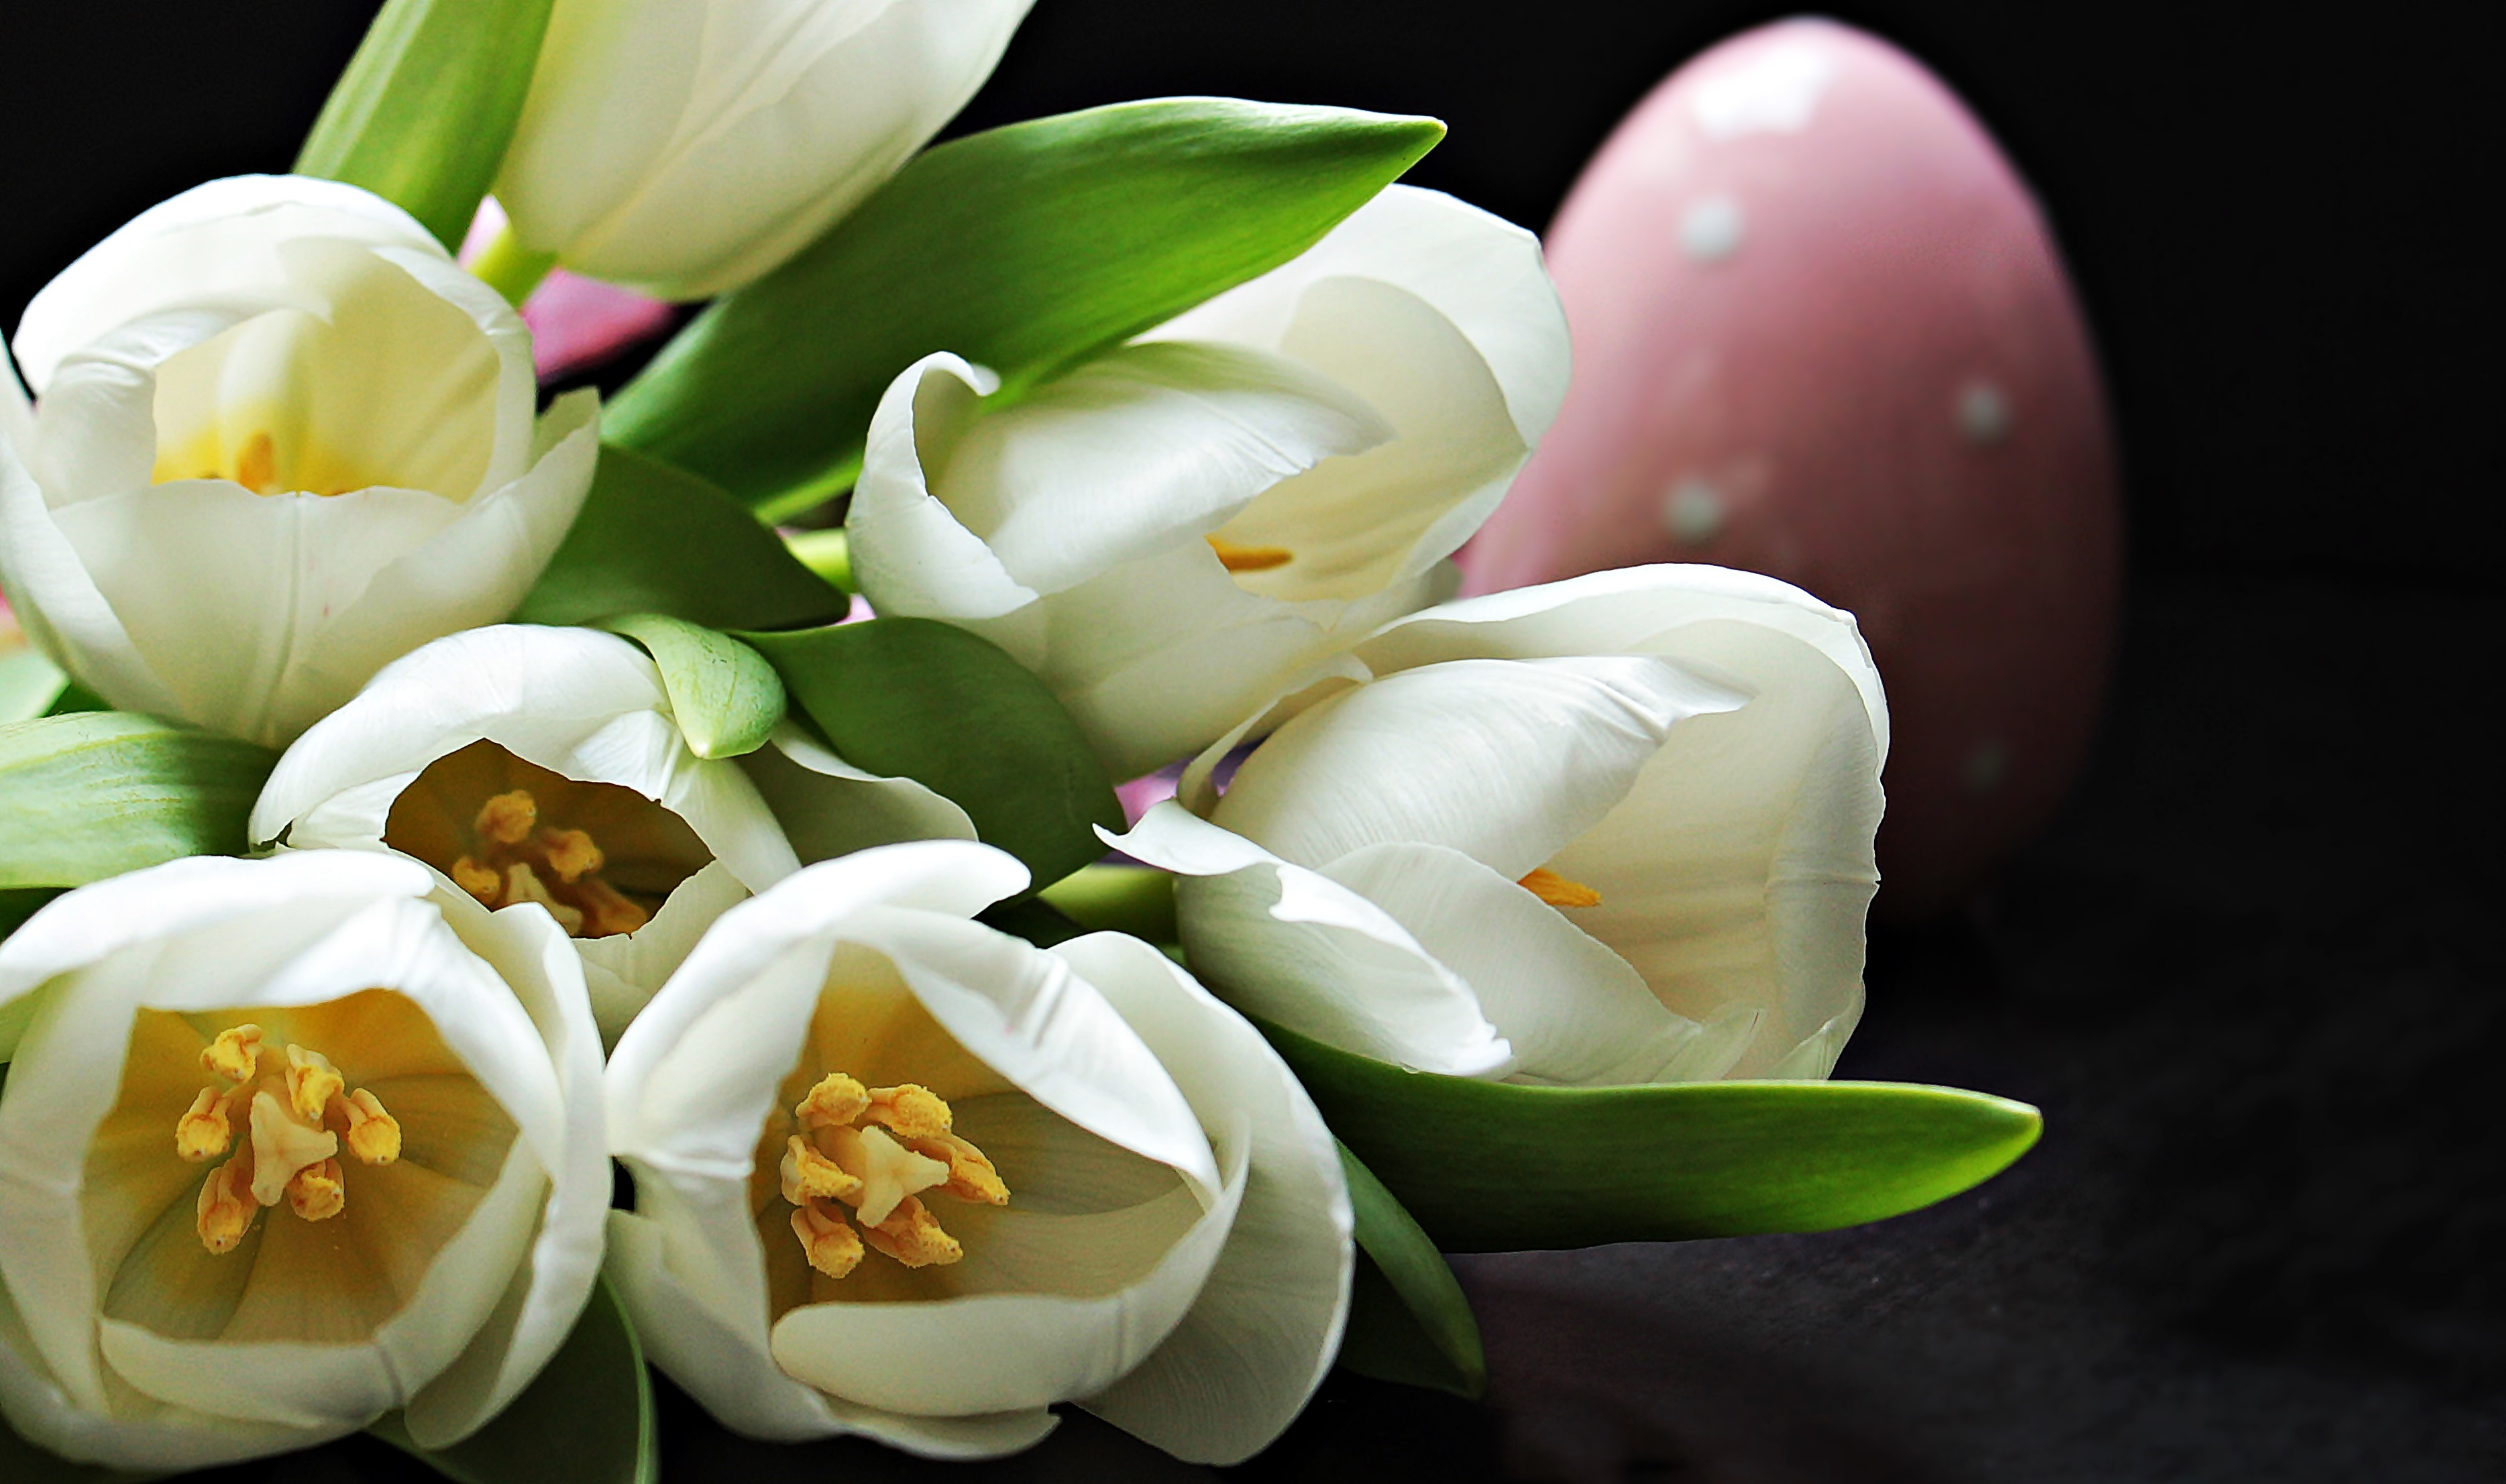 A photo of five white tulips and with a pink Easter egg in the background